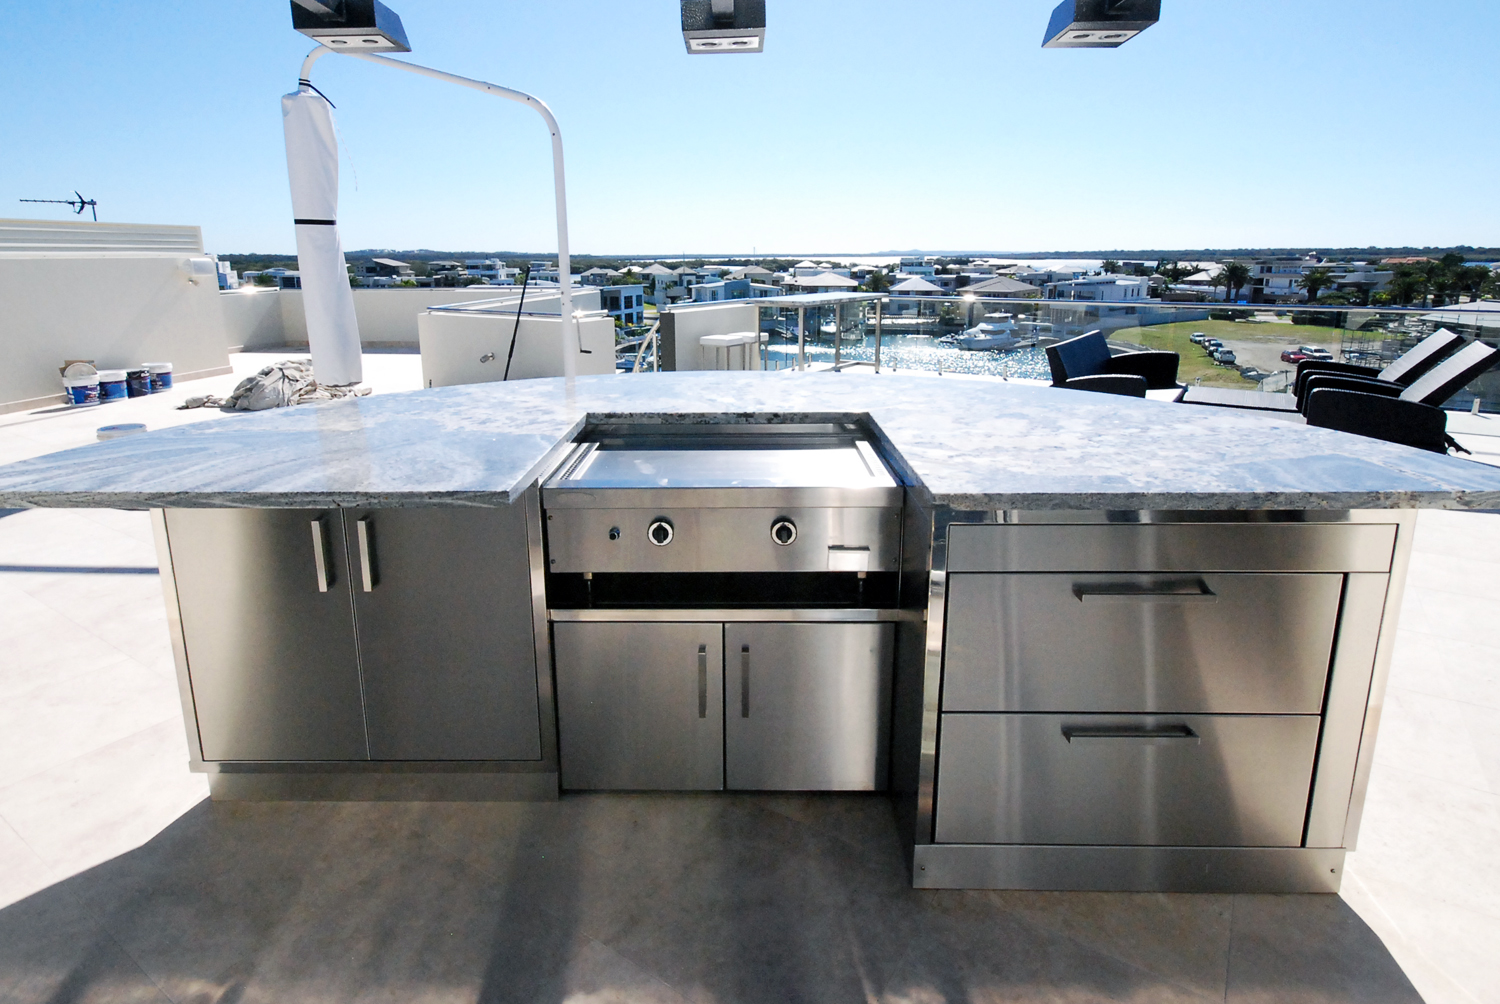 Residential stainless steel outdoor kitchen and bbq